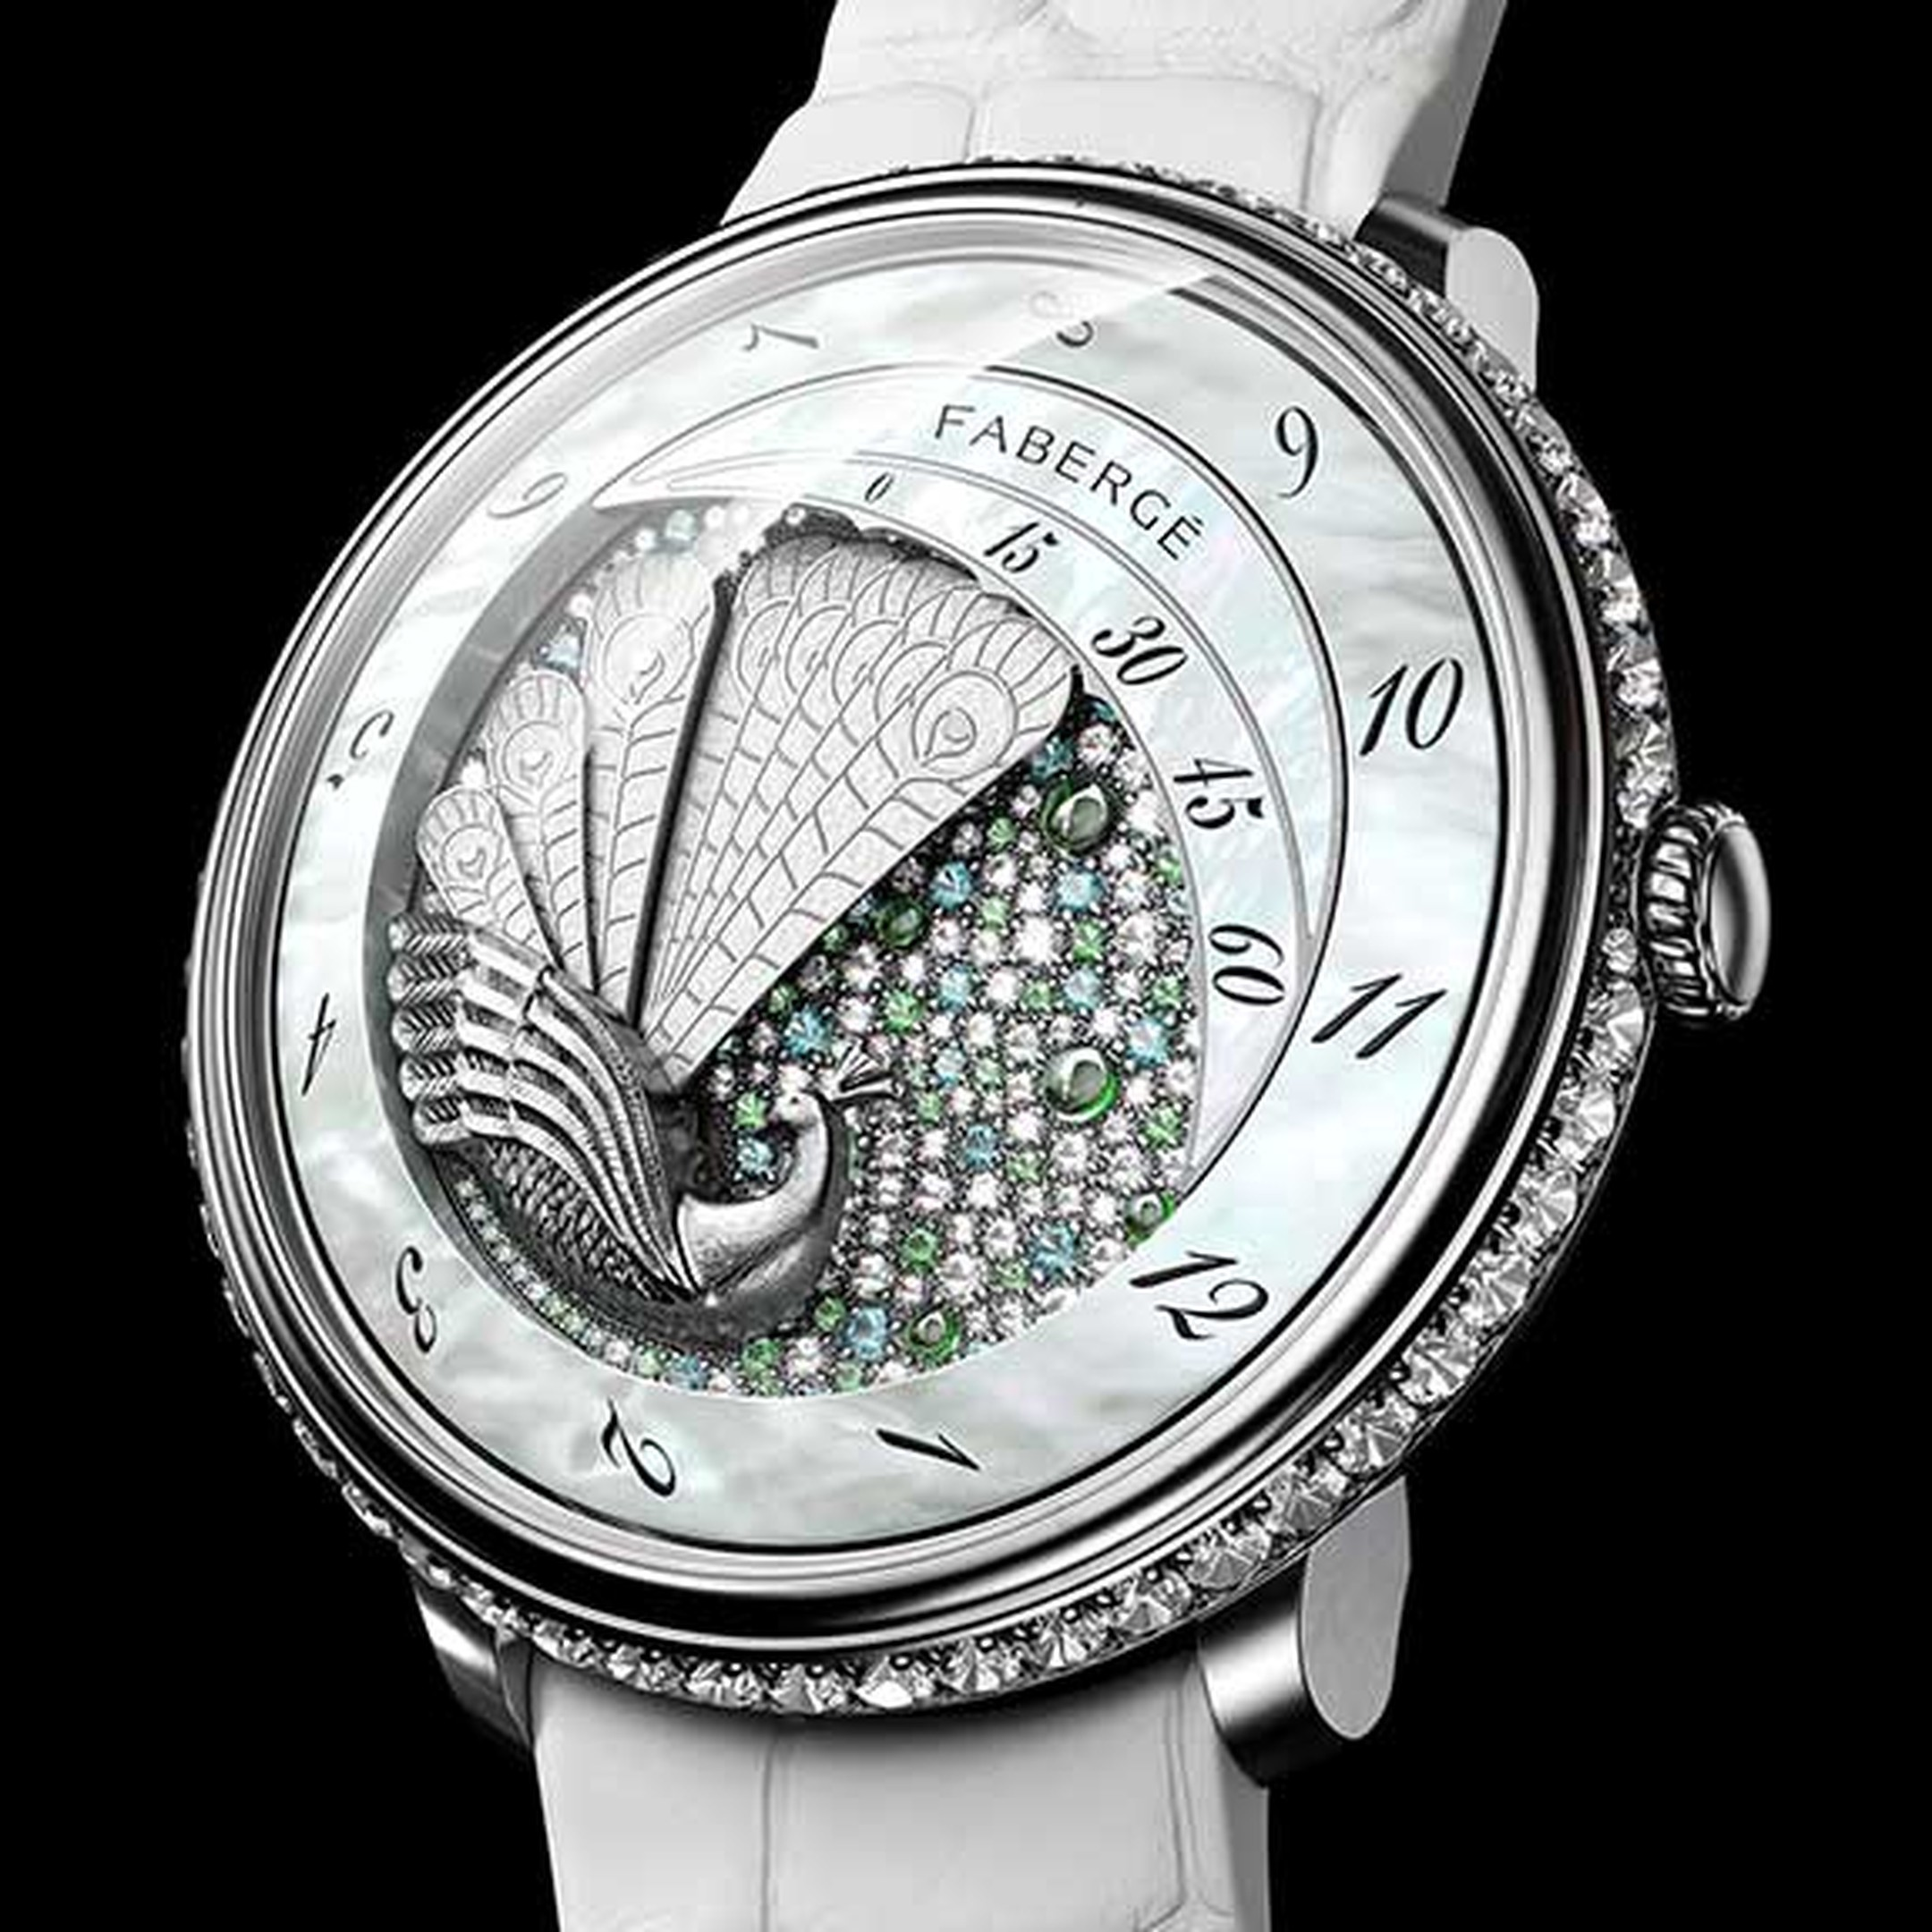 Faberge -Lady -Compliquee -watch